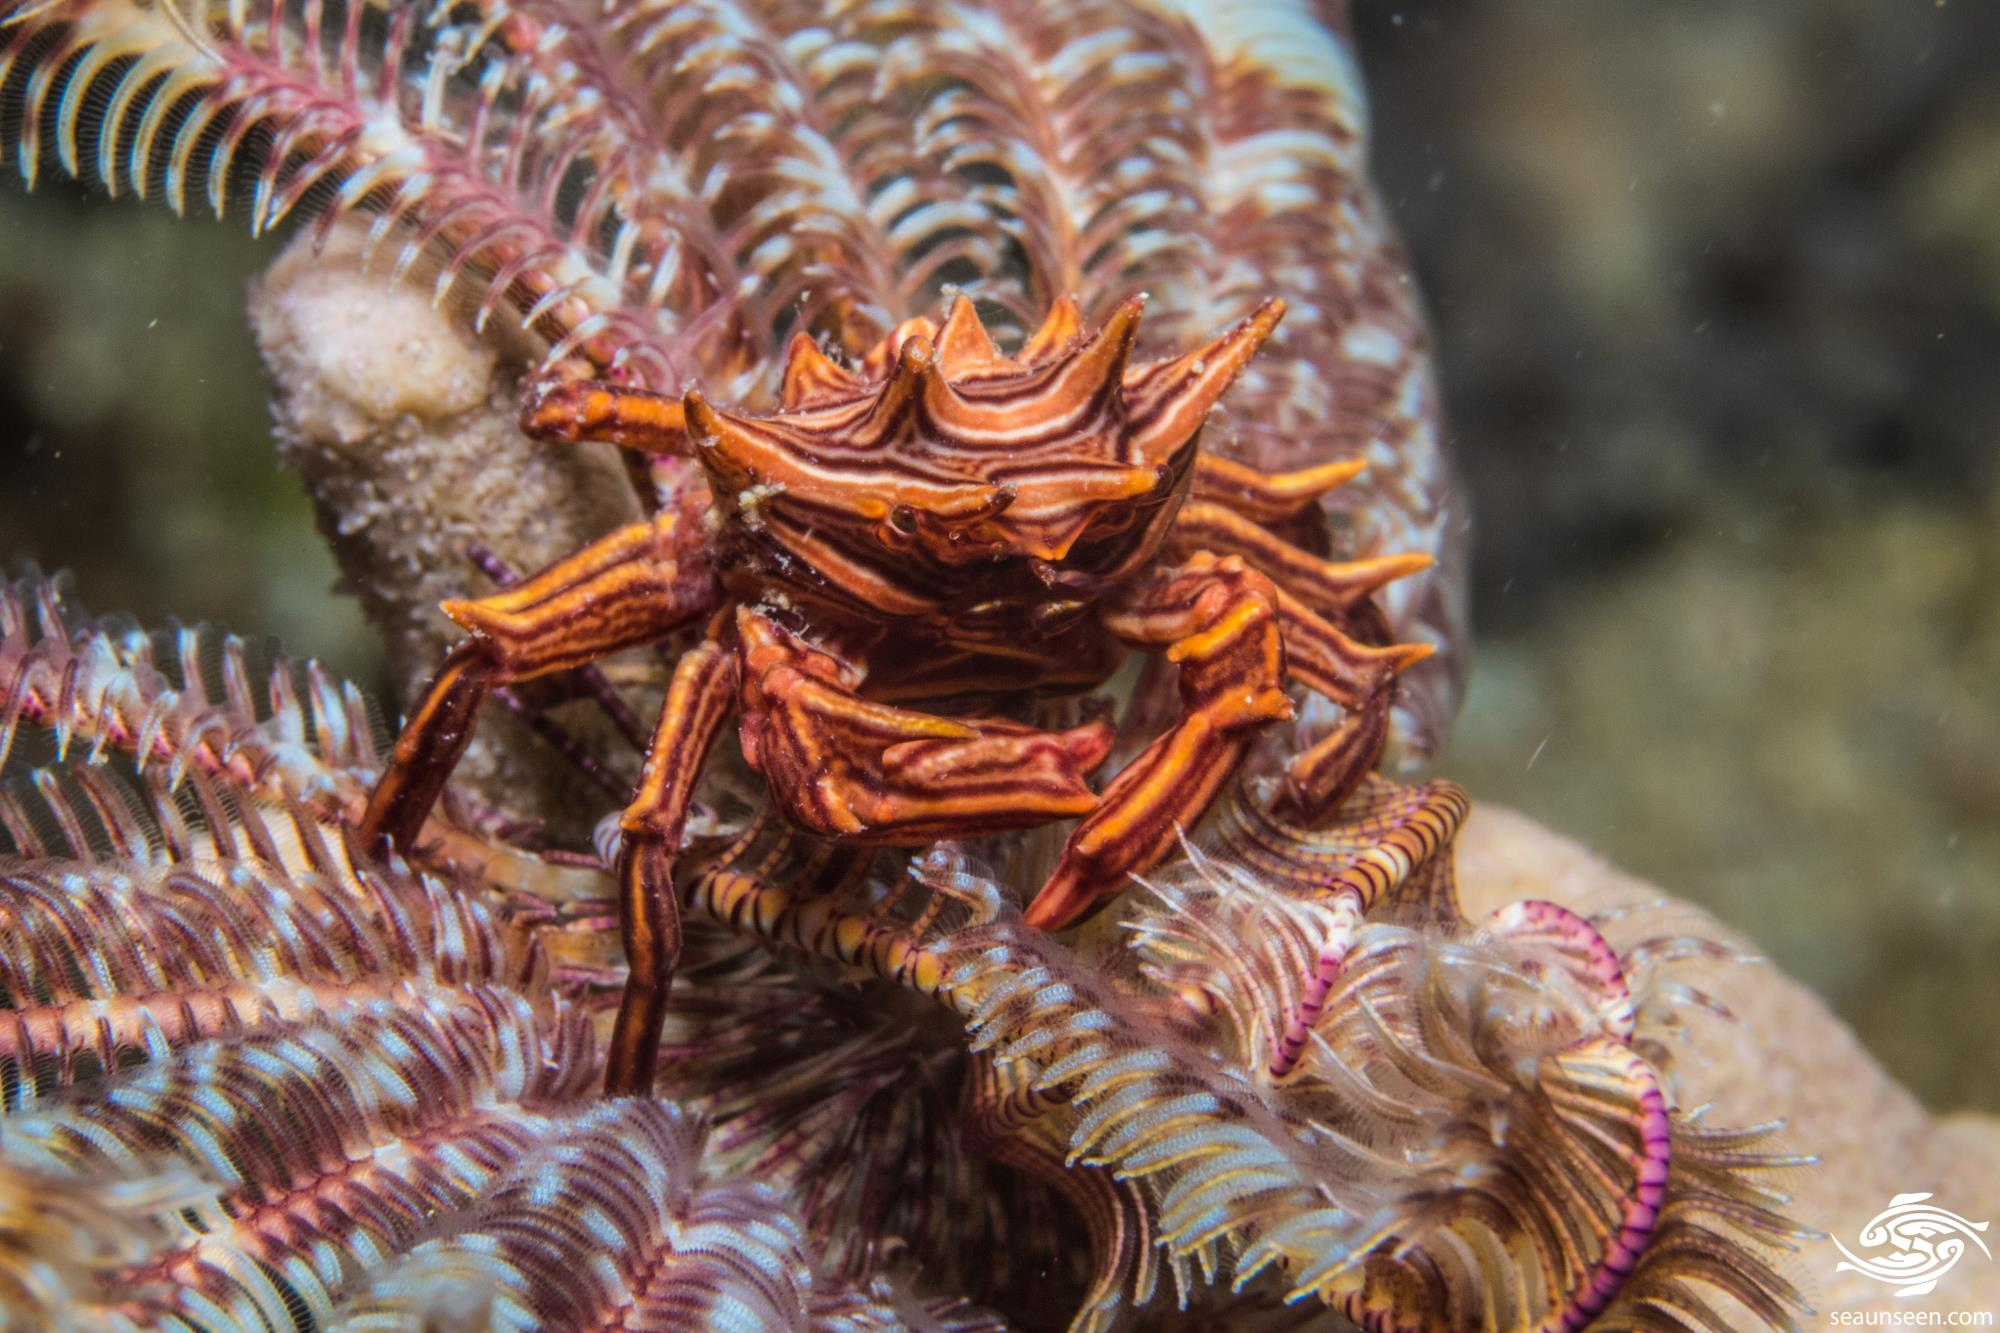 Feather Star Crab (Tiaramedon spinosum)